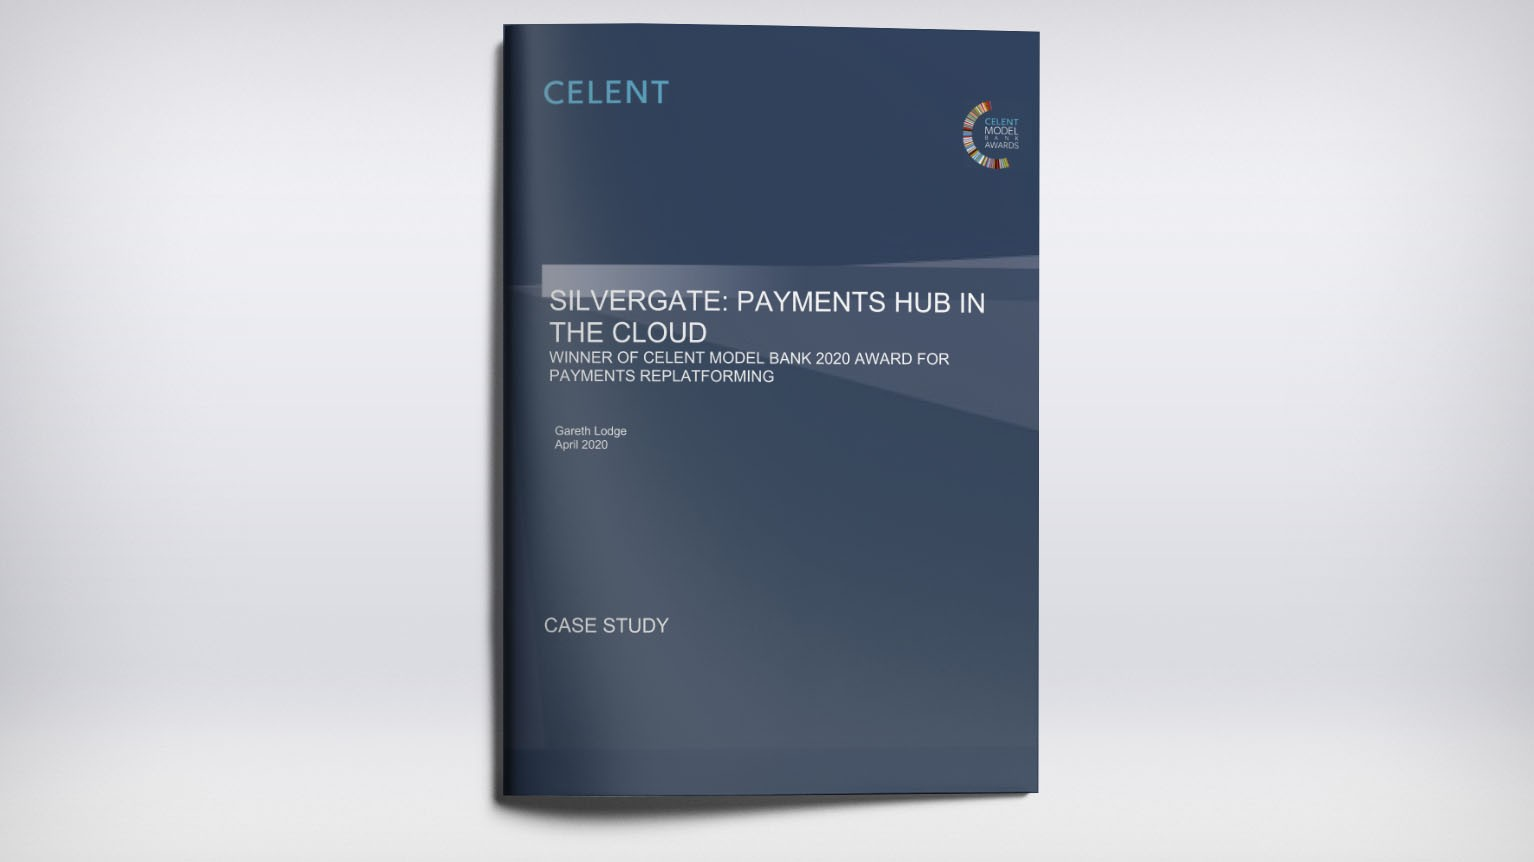 Learn why Silvergate won Celent's Model Bank 2020 Award for Payments Replatforming